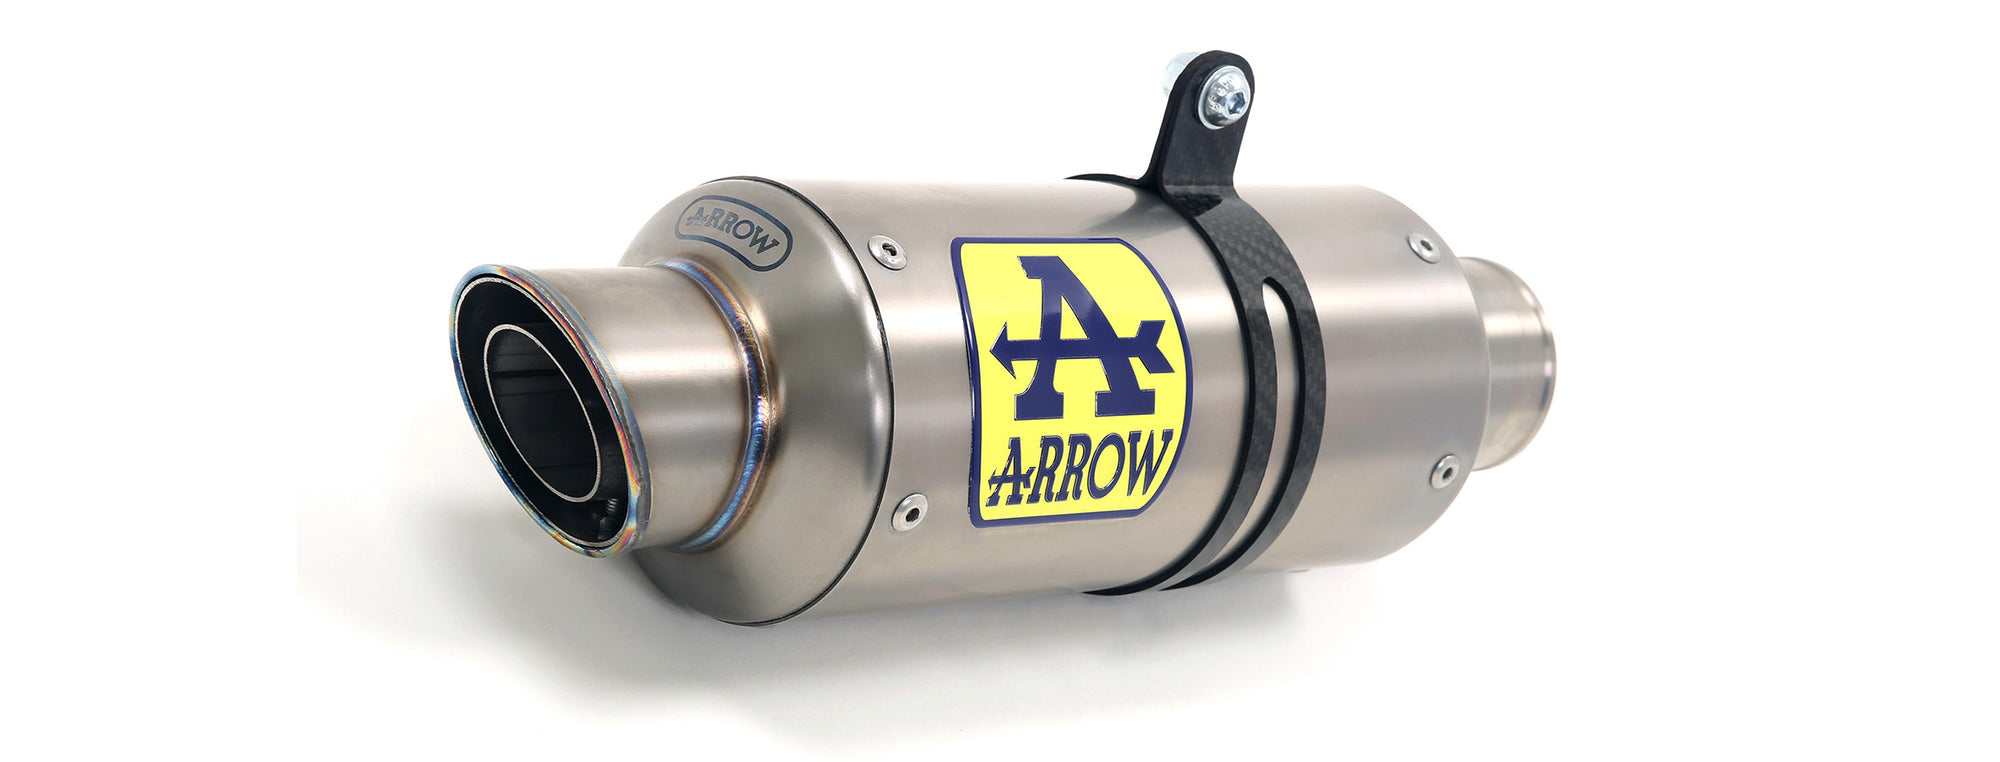 GP2 Exhaust - Aprilia, Exhaust Silencer, Arrow Exhausts - Race and Trackday Parts